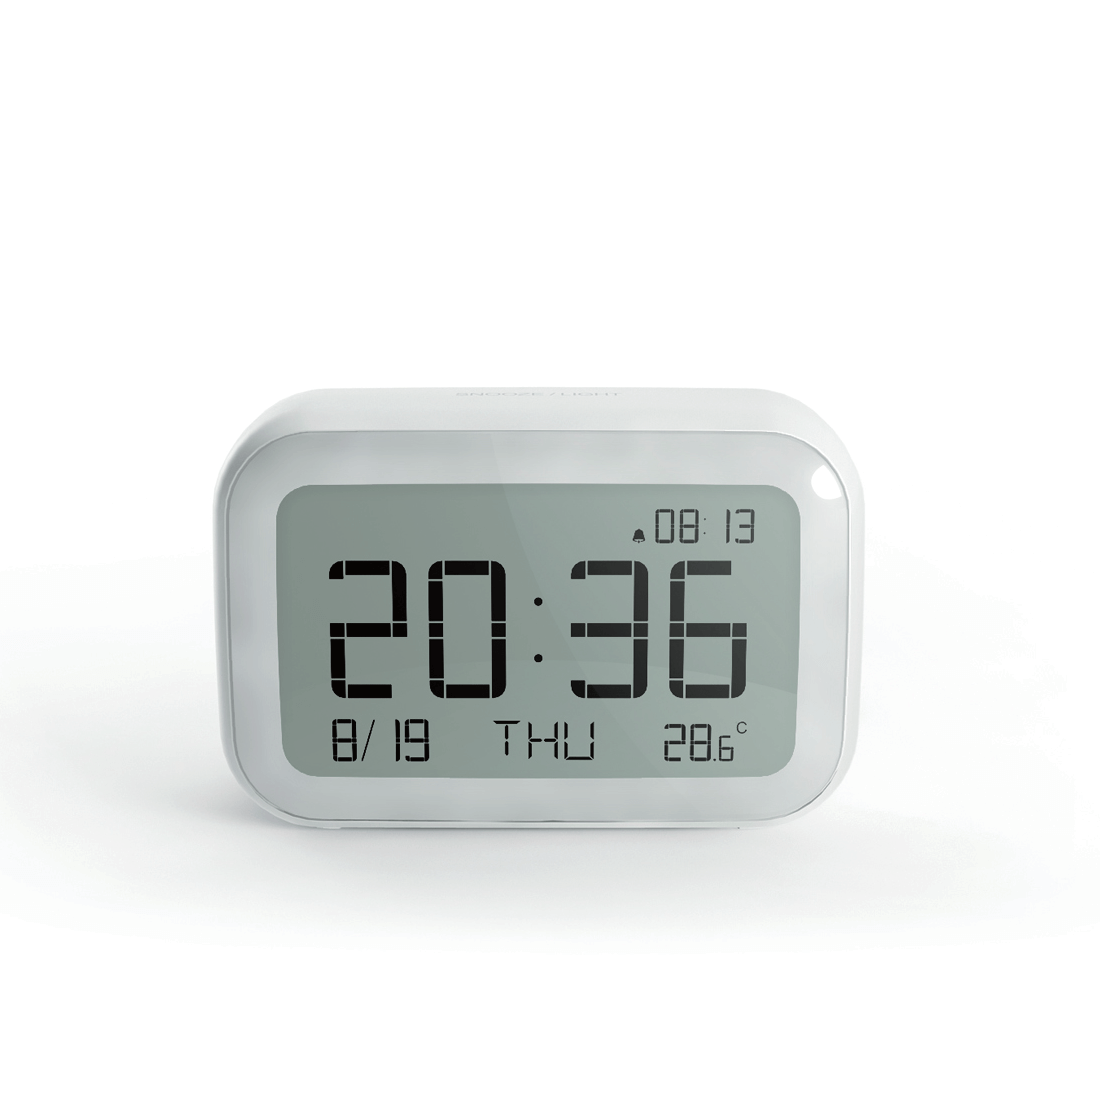 Digital Desk Clock Wireless Weather Station Digital Alarm Clock Air Quality